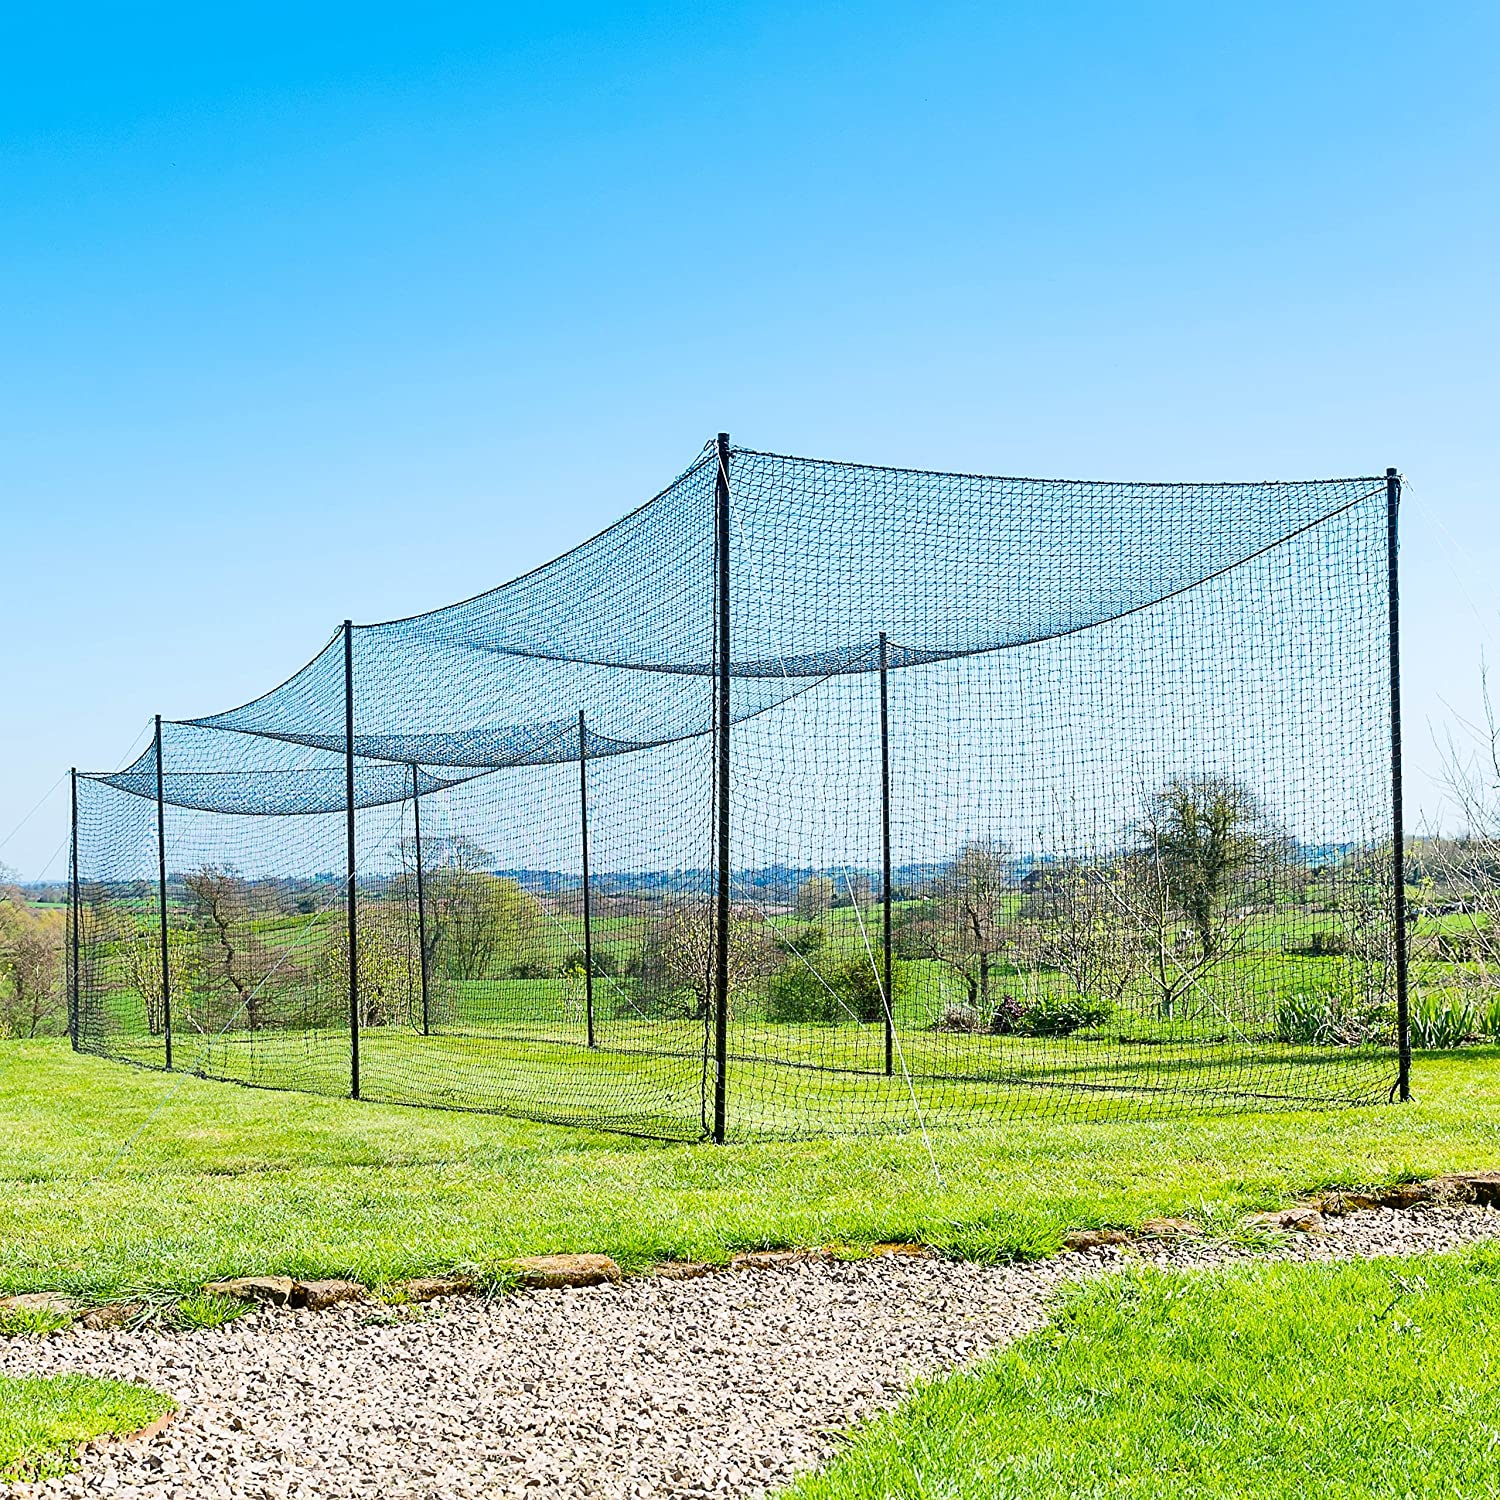 Fortress Ultimate Baseball Batting Cage [20', 35', 55', 70'] | #42 Grade Net with Steel Poles